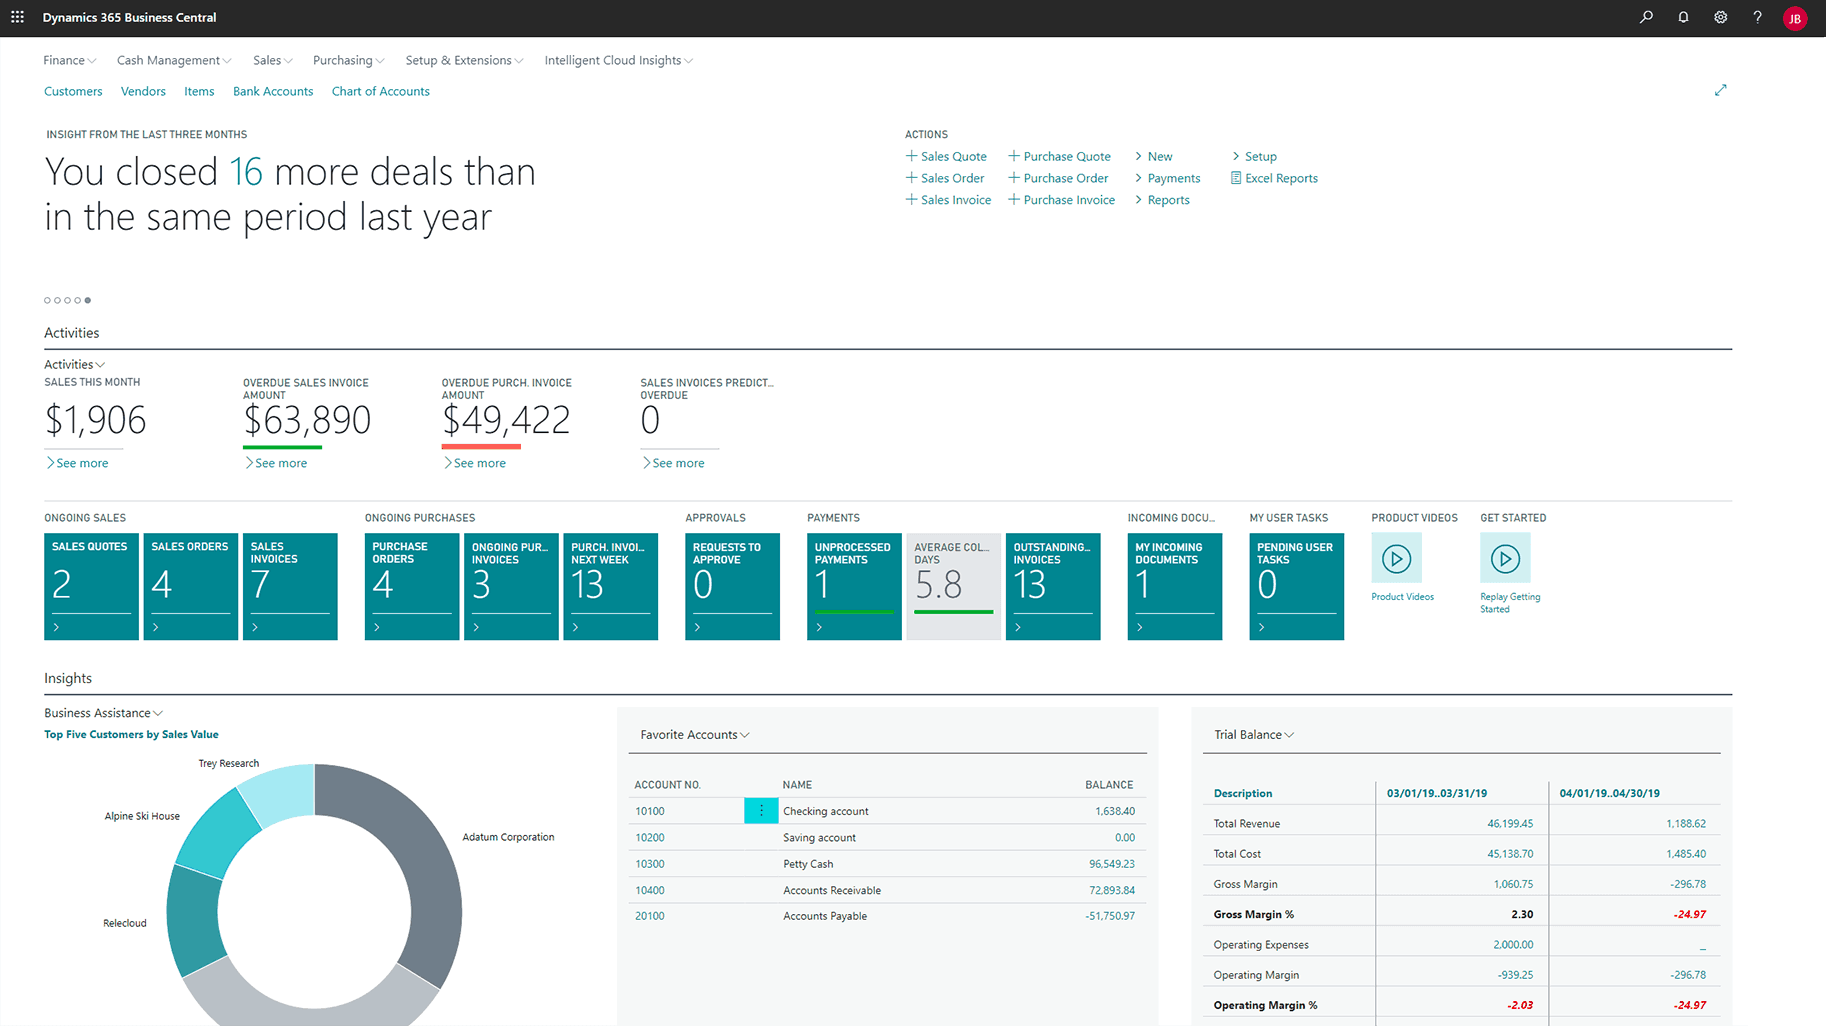 Dashboard - Dynamics 365 Business Central